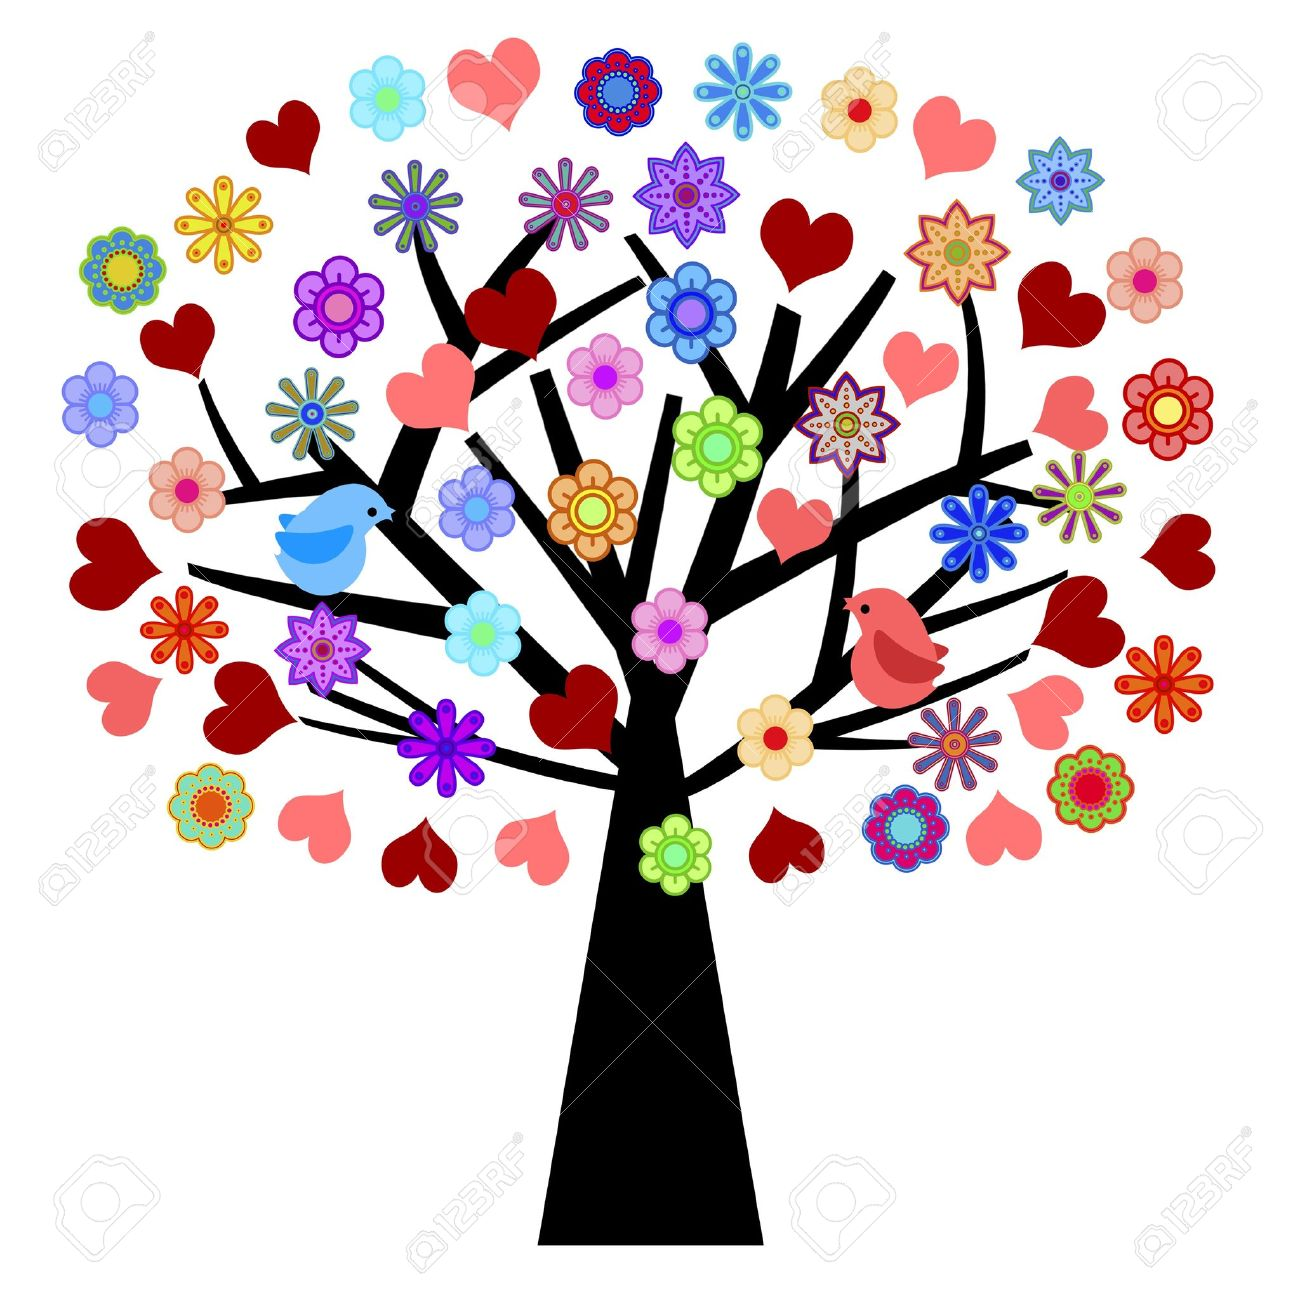 Valentines Day Tree With Love Birds Hearts Flowers Illustration